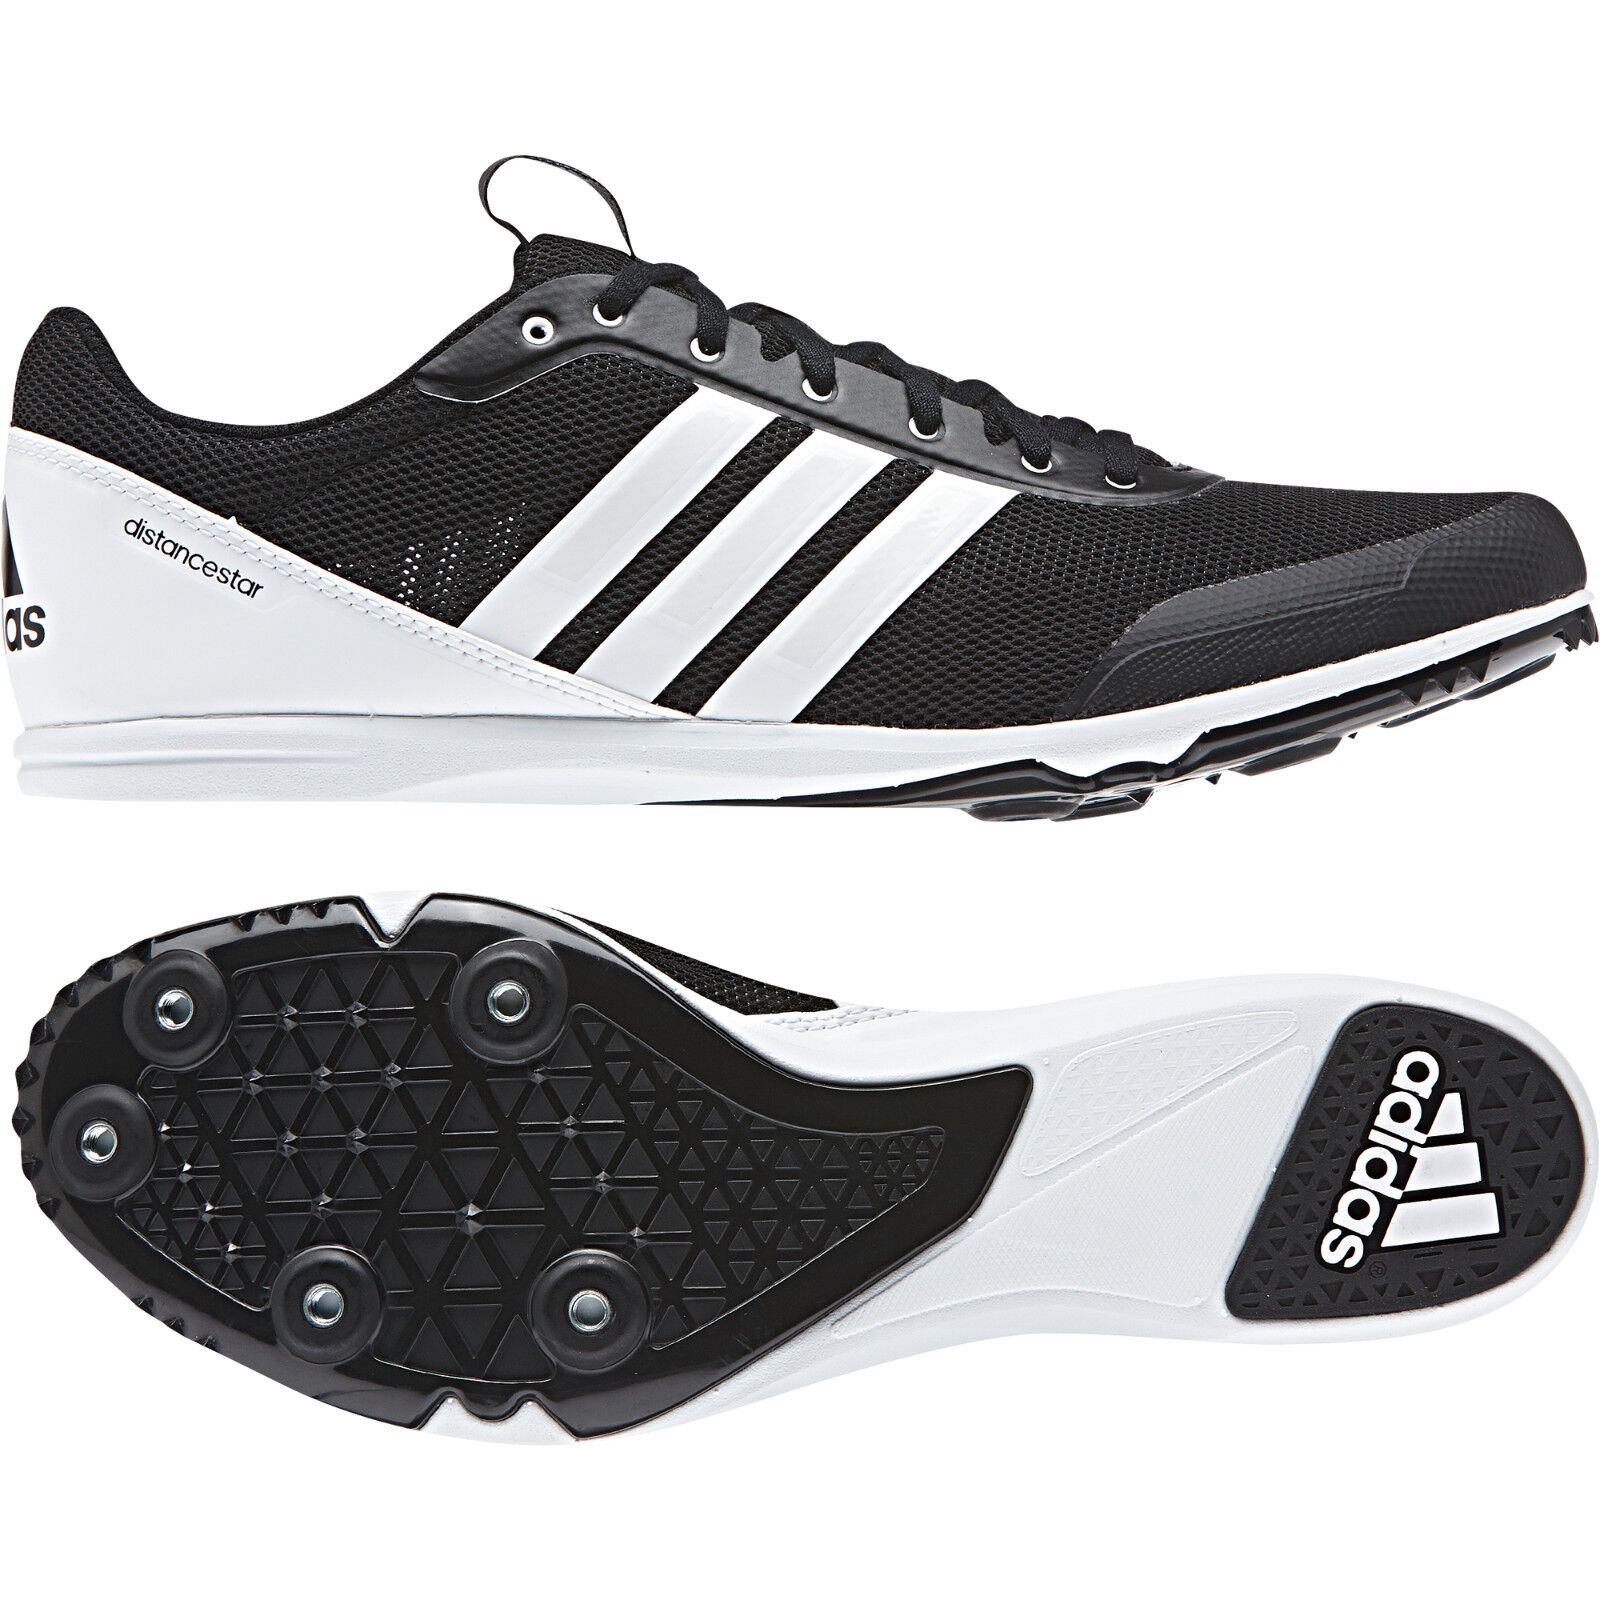 Adidas Men Shoes Spikes New Training Distancestar Running Track Trainers New Spikes AQ0213 cc68ba